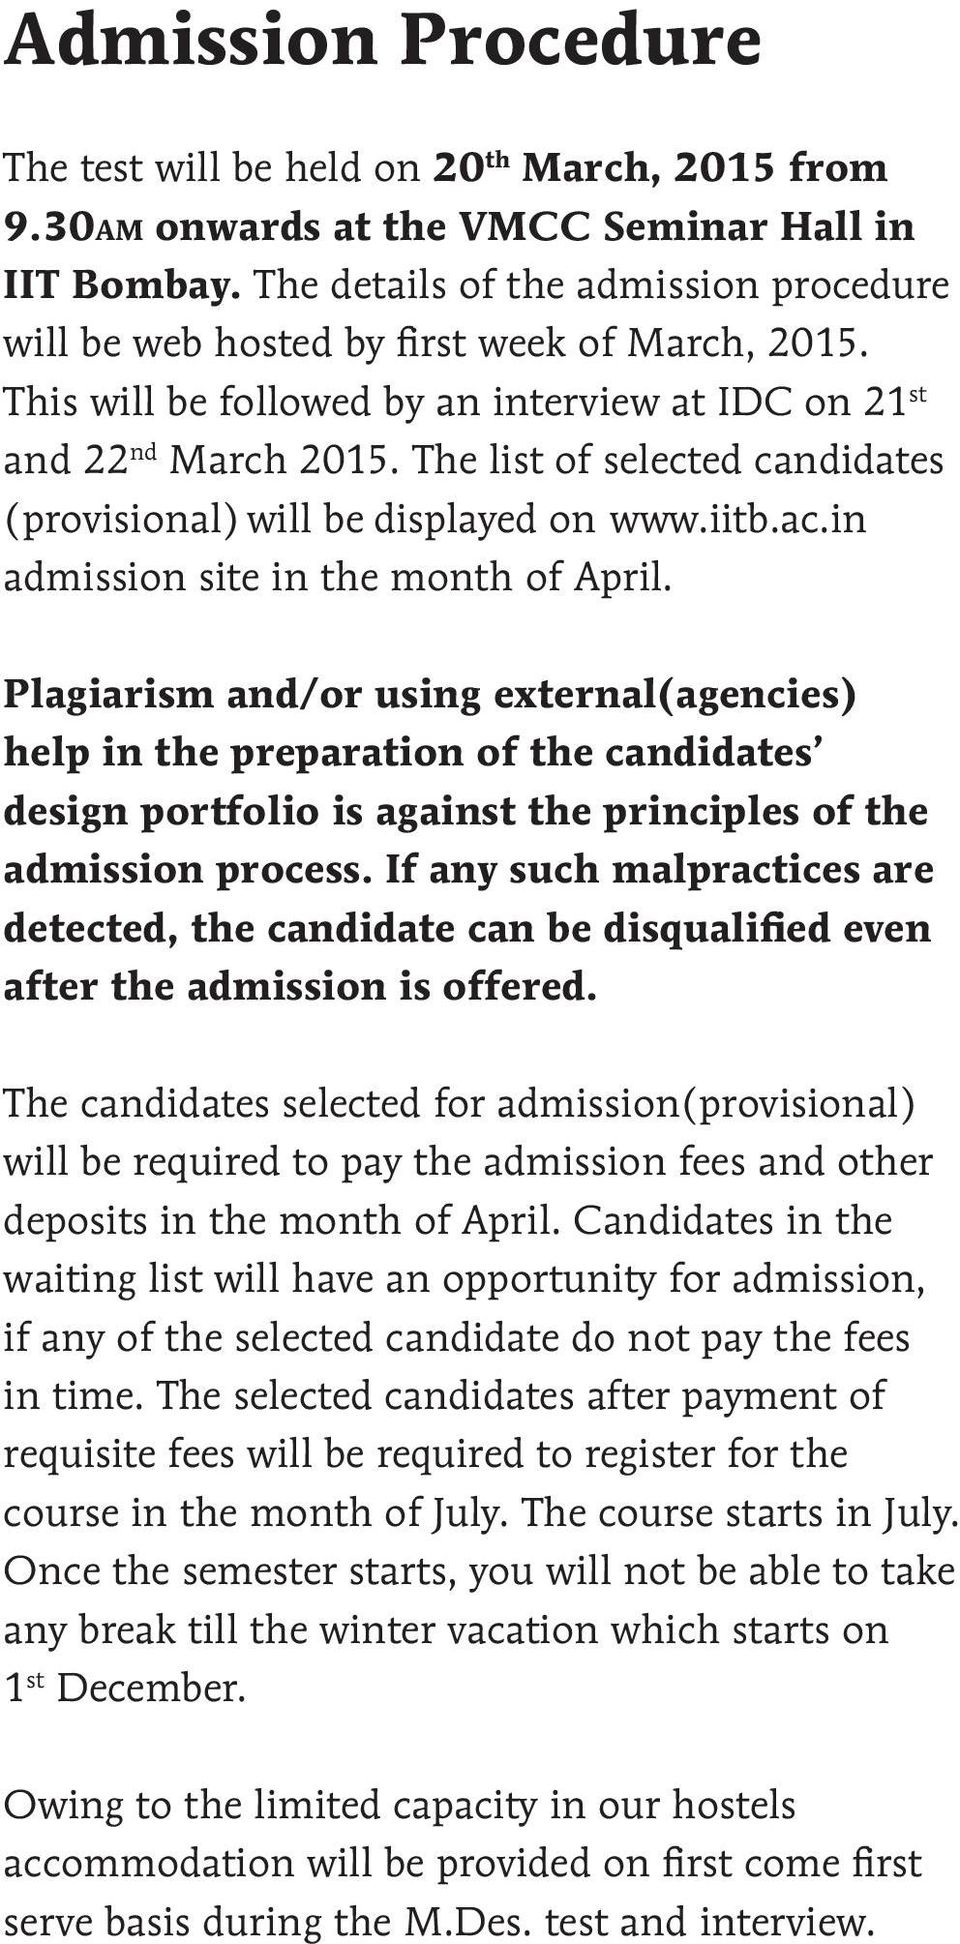 The list of selected candidates (provisional) will be displayed on www.iitb.ac.in admission site in the month of April.